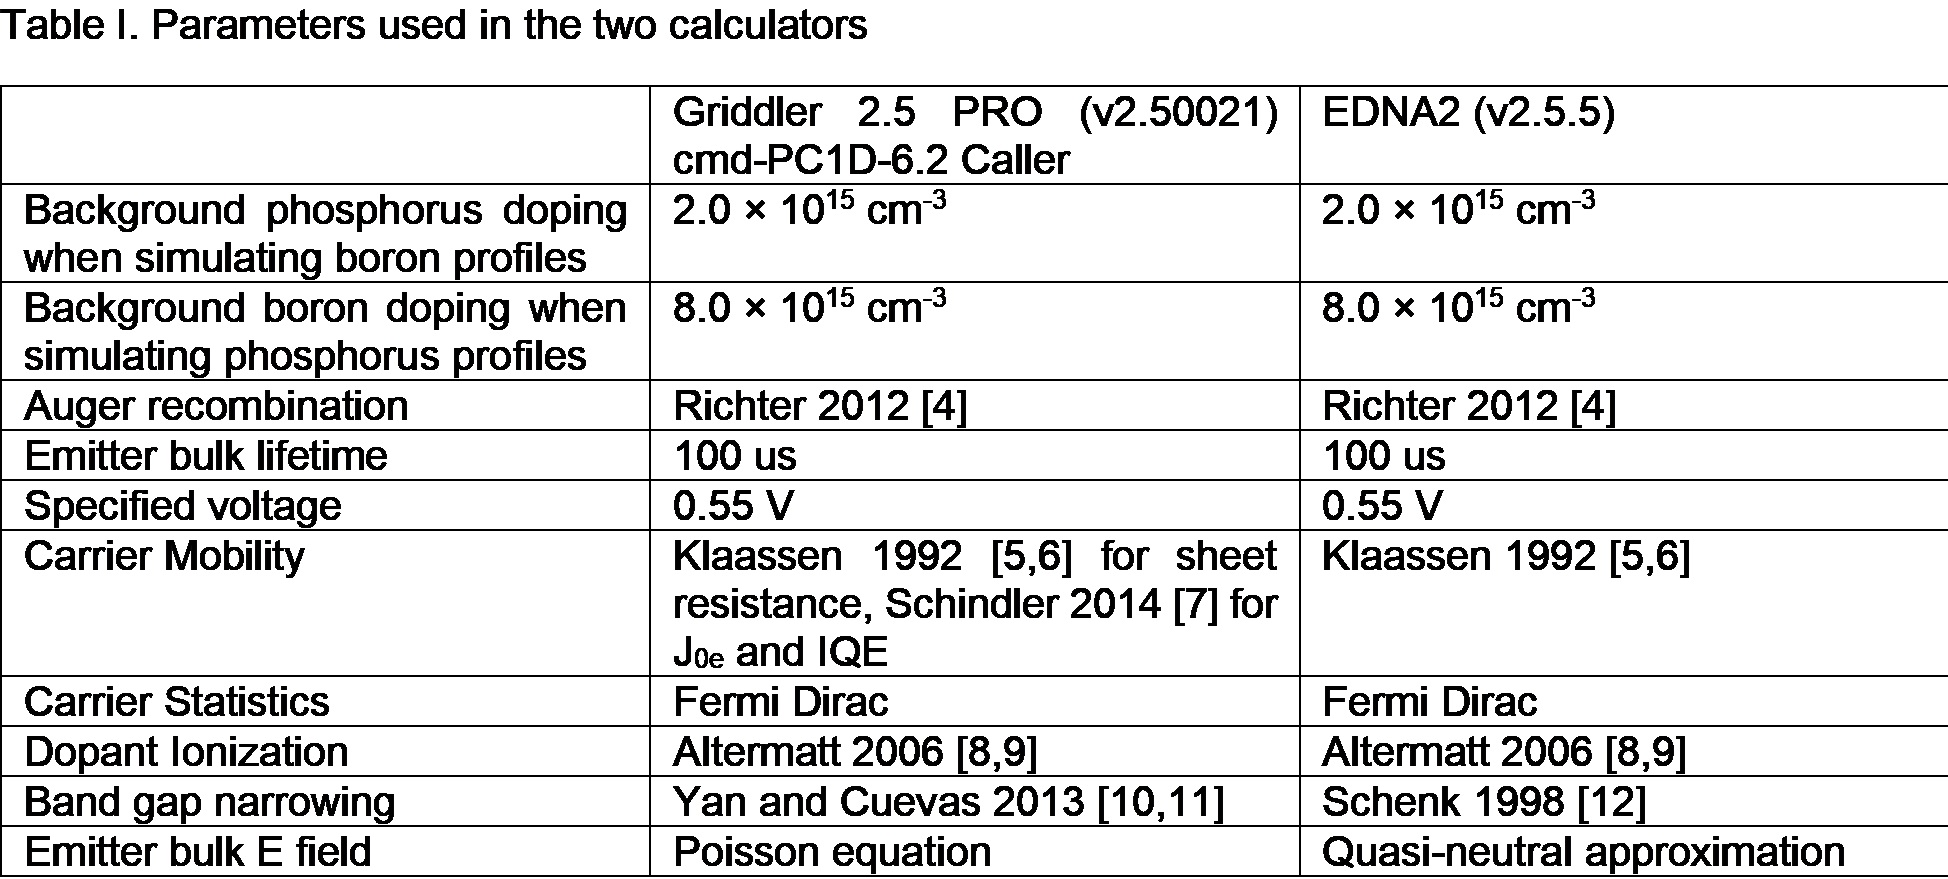 Table: Parameters Used in Diffusion Calculations